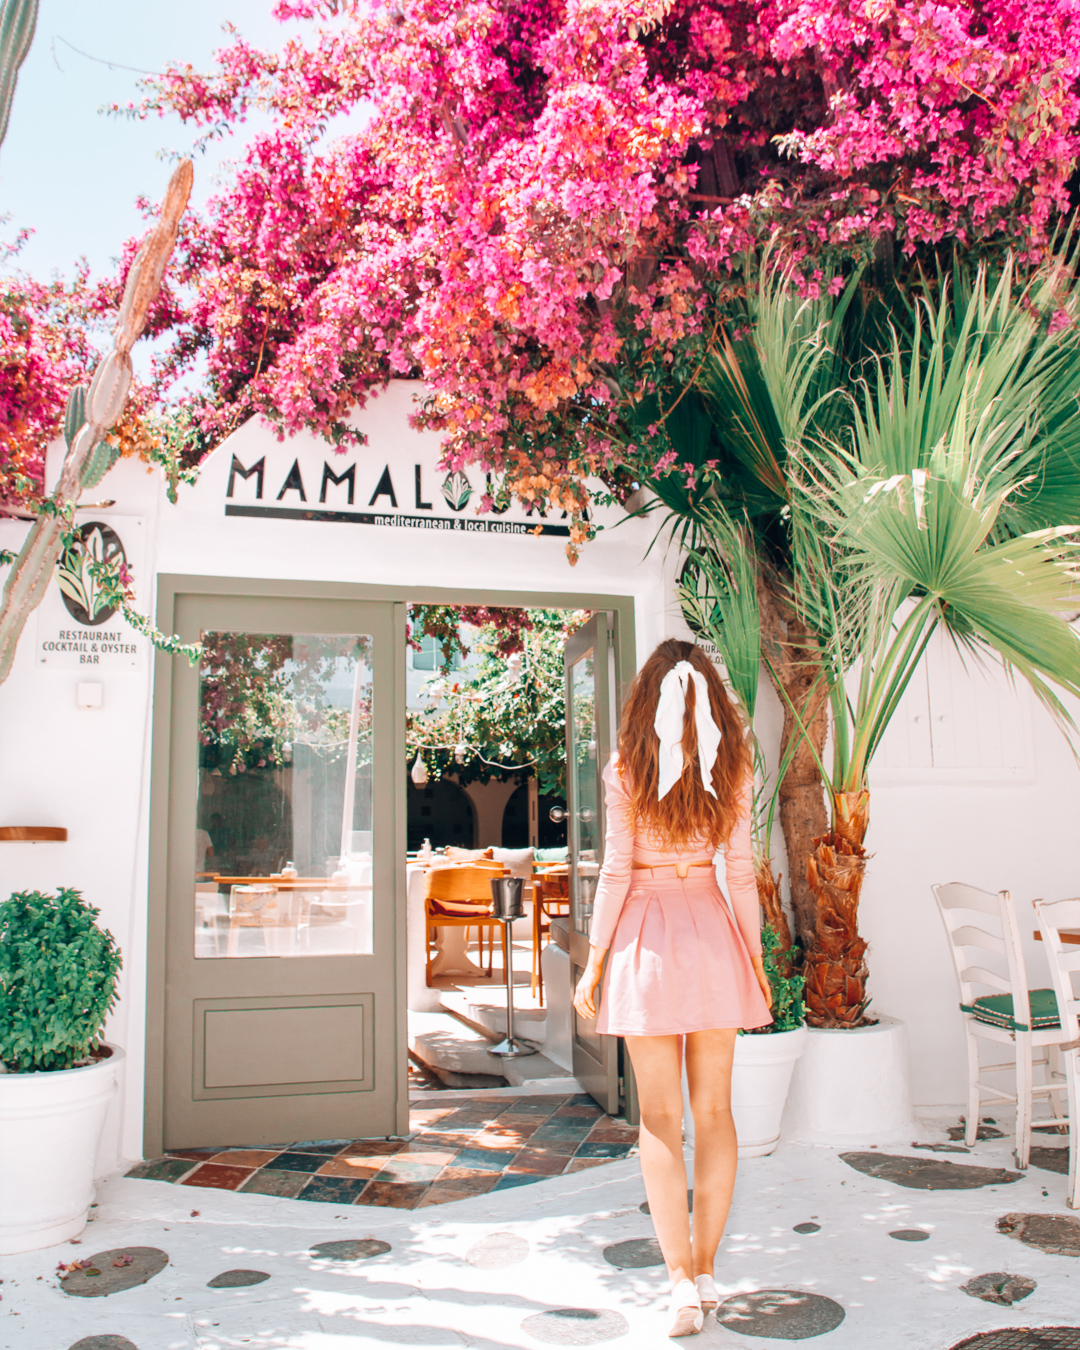 Girl in front of Mamalouka